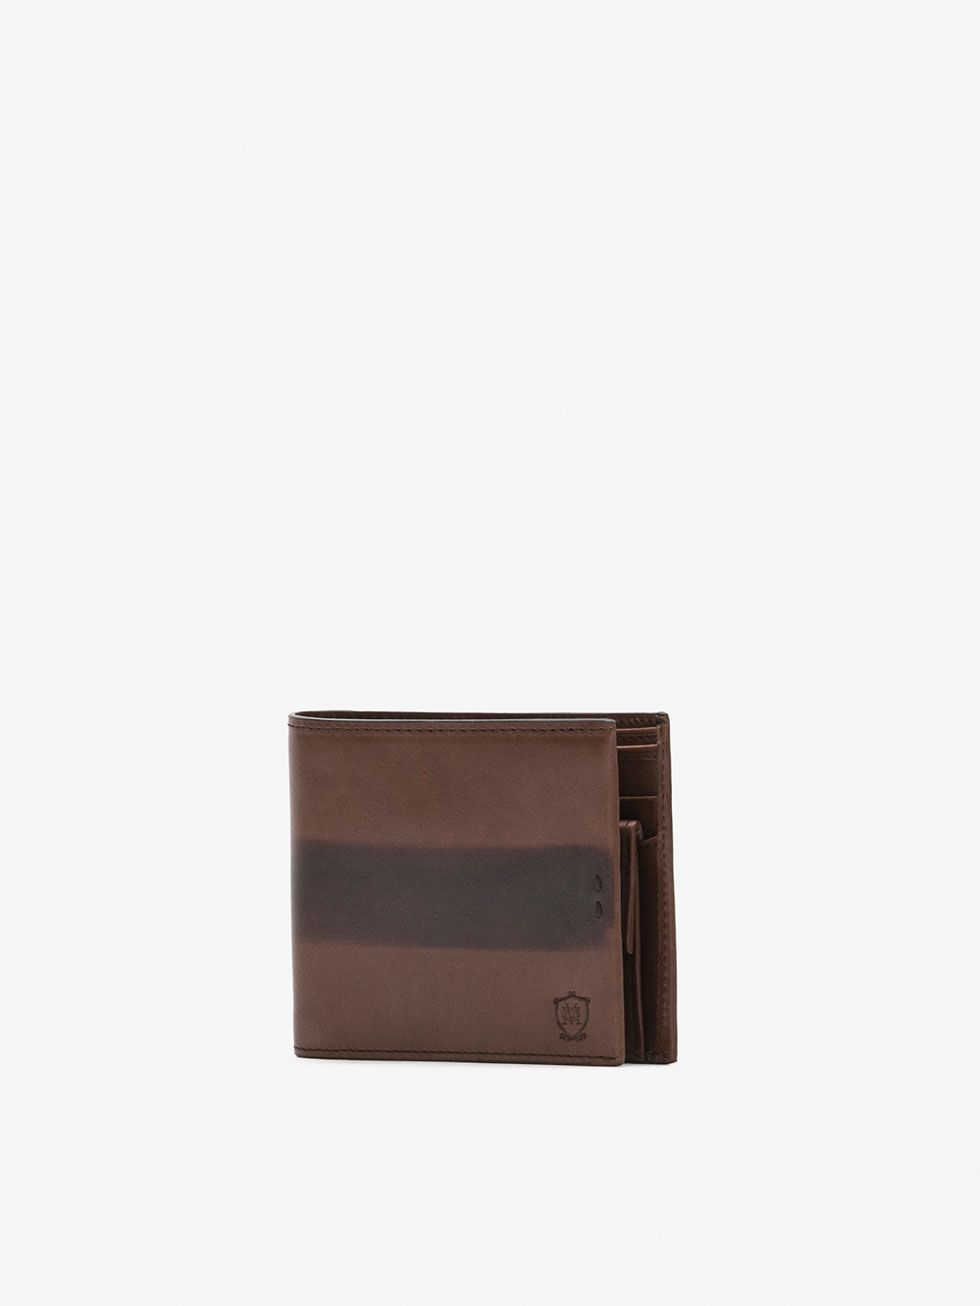 a17cb935d0 Autumn winter 2016 Men´s TWO-TONE LEATHER WALLET at Massimo Dutti for 39.9.  Effortless elegance!